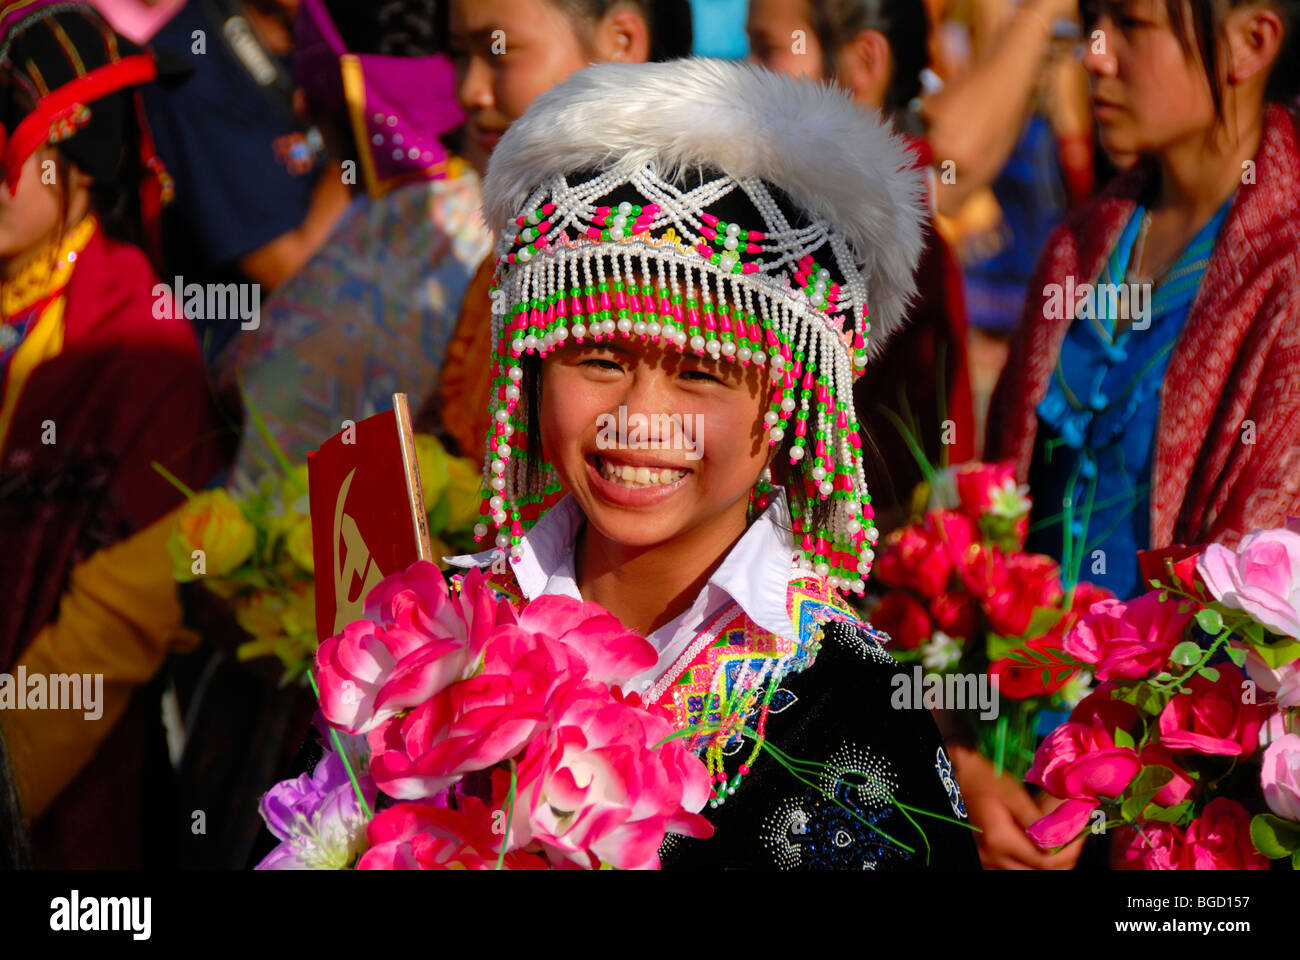 Festival, young Hmong woman, portrait, dressed in traditional clothing, colourful headwear, Xam Neua, Houaphan province, - Stock Image